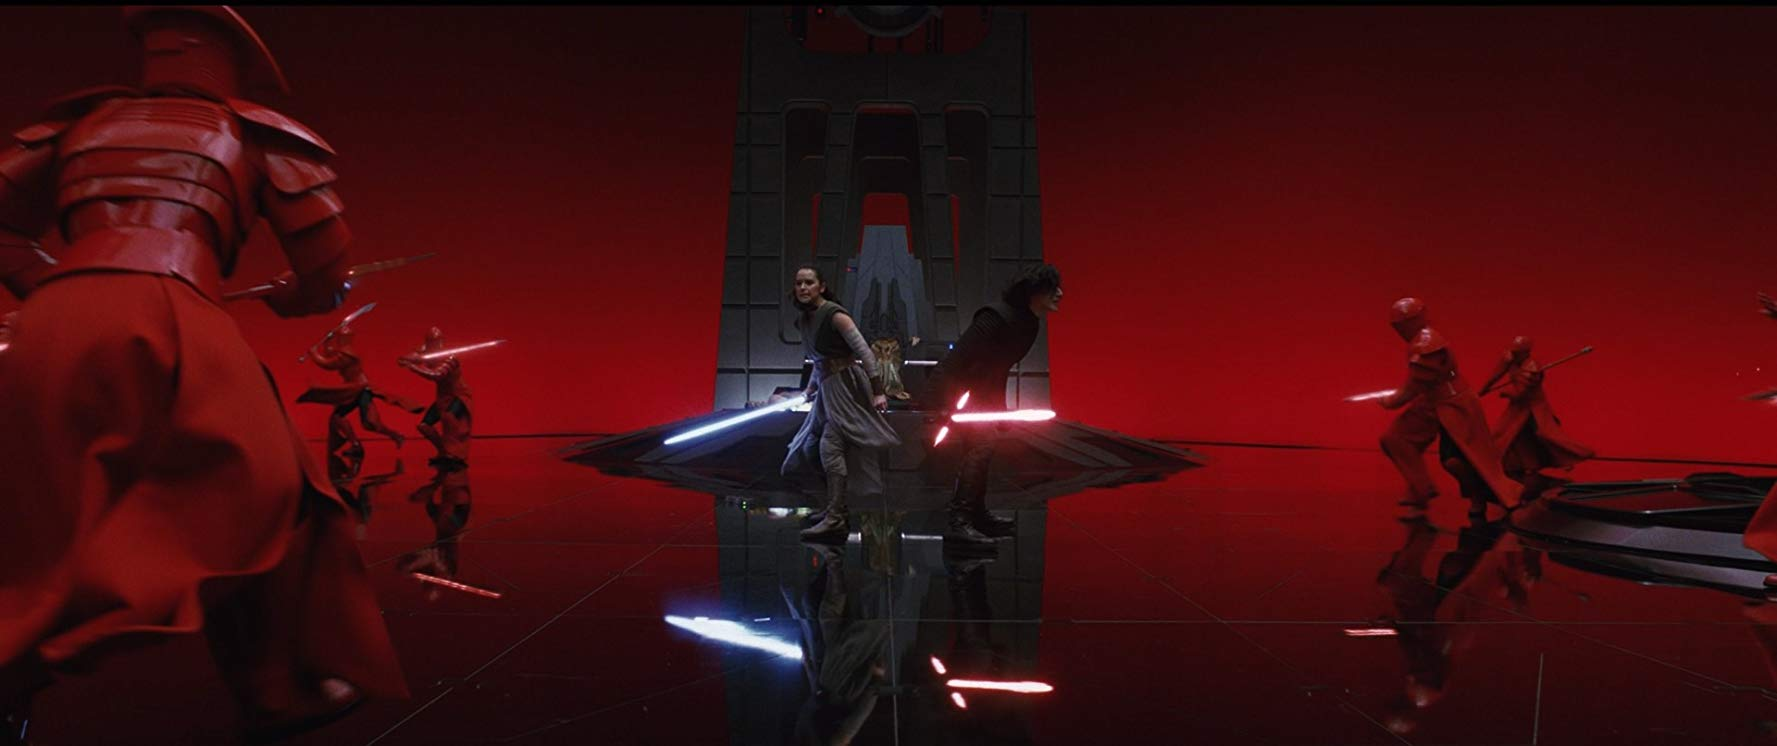 Rey (Daisy Ridley) and Kylo Ren (Adam Driver) in the lightsabre battle in Snoke's throne room in Star Wars: Episode VIII: The Last Jedi (2017)